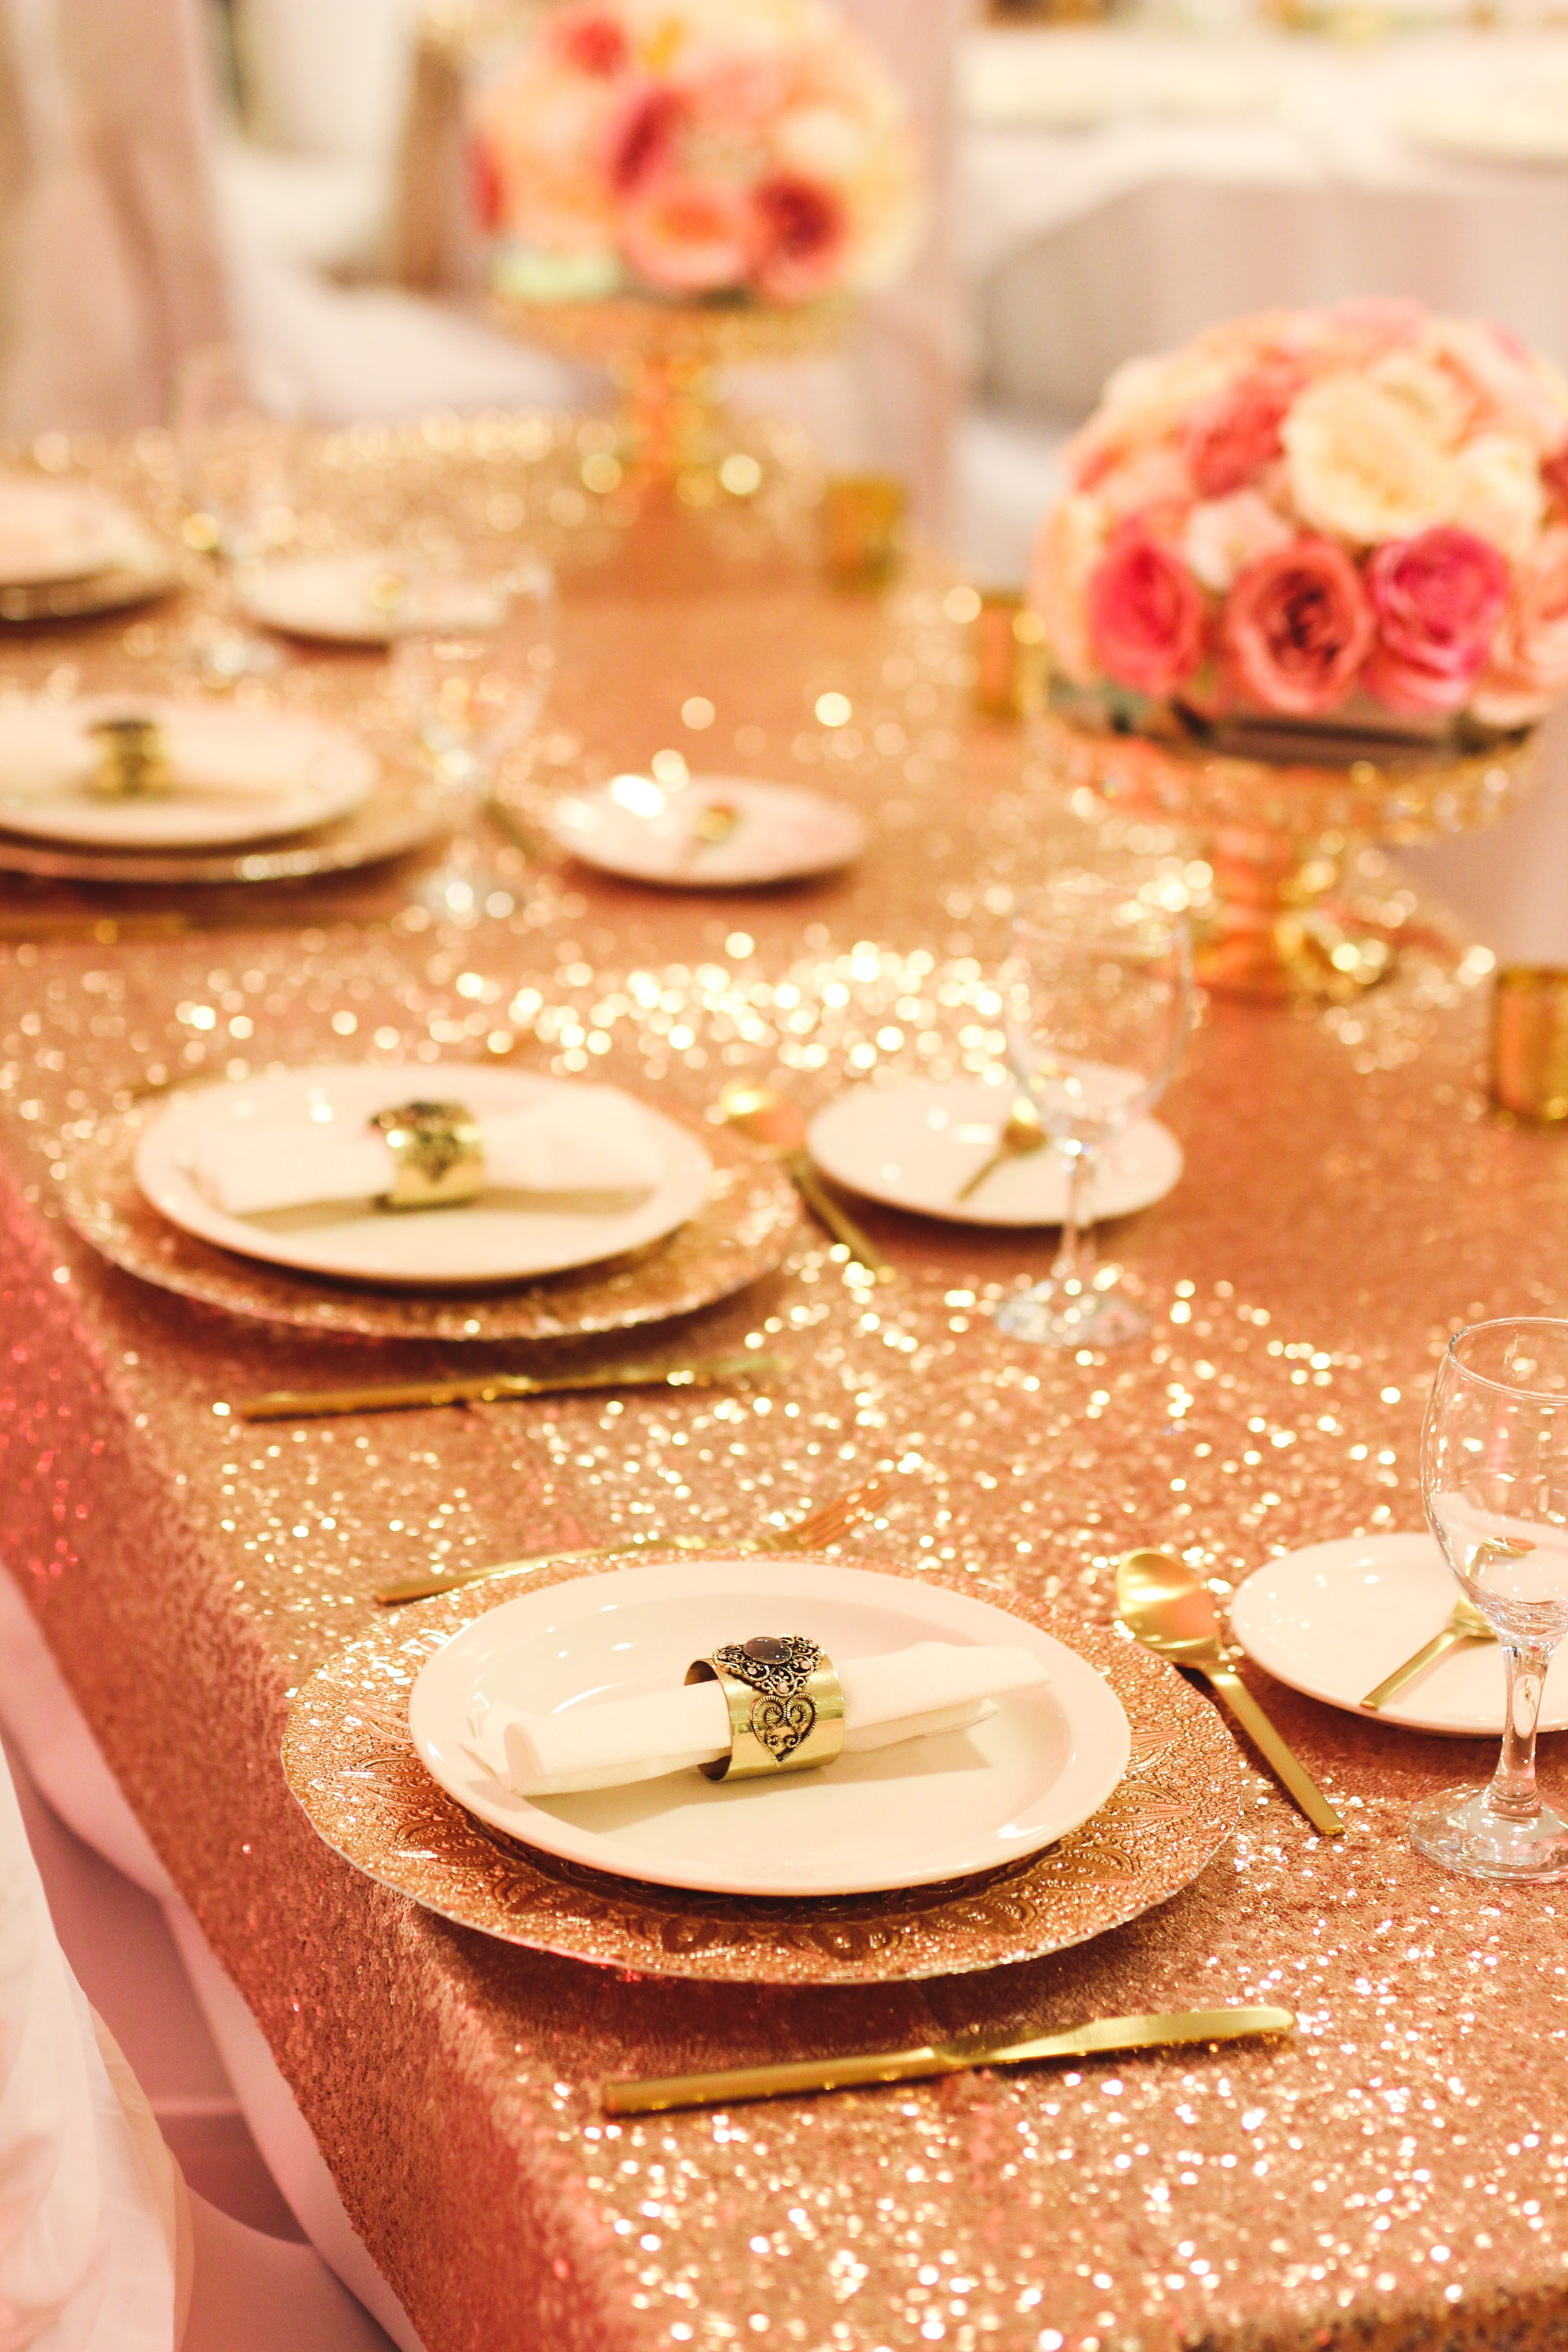 chair covers for hire parties foldable picnic table rose gold glass charger plates - beyond expectations weddings & events